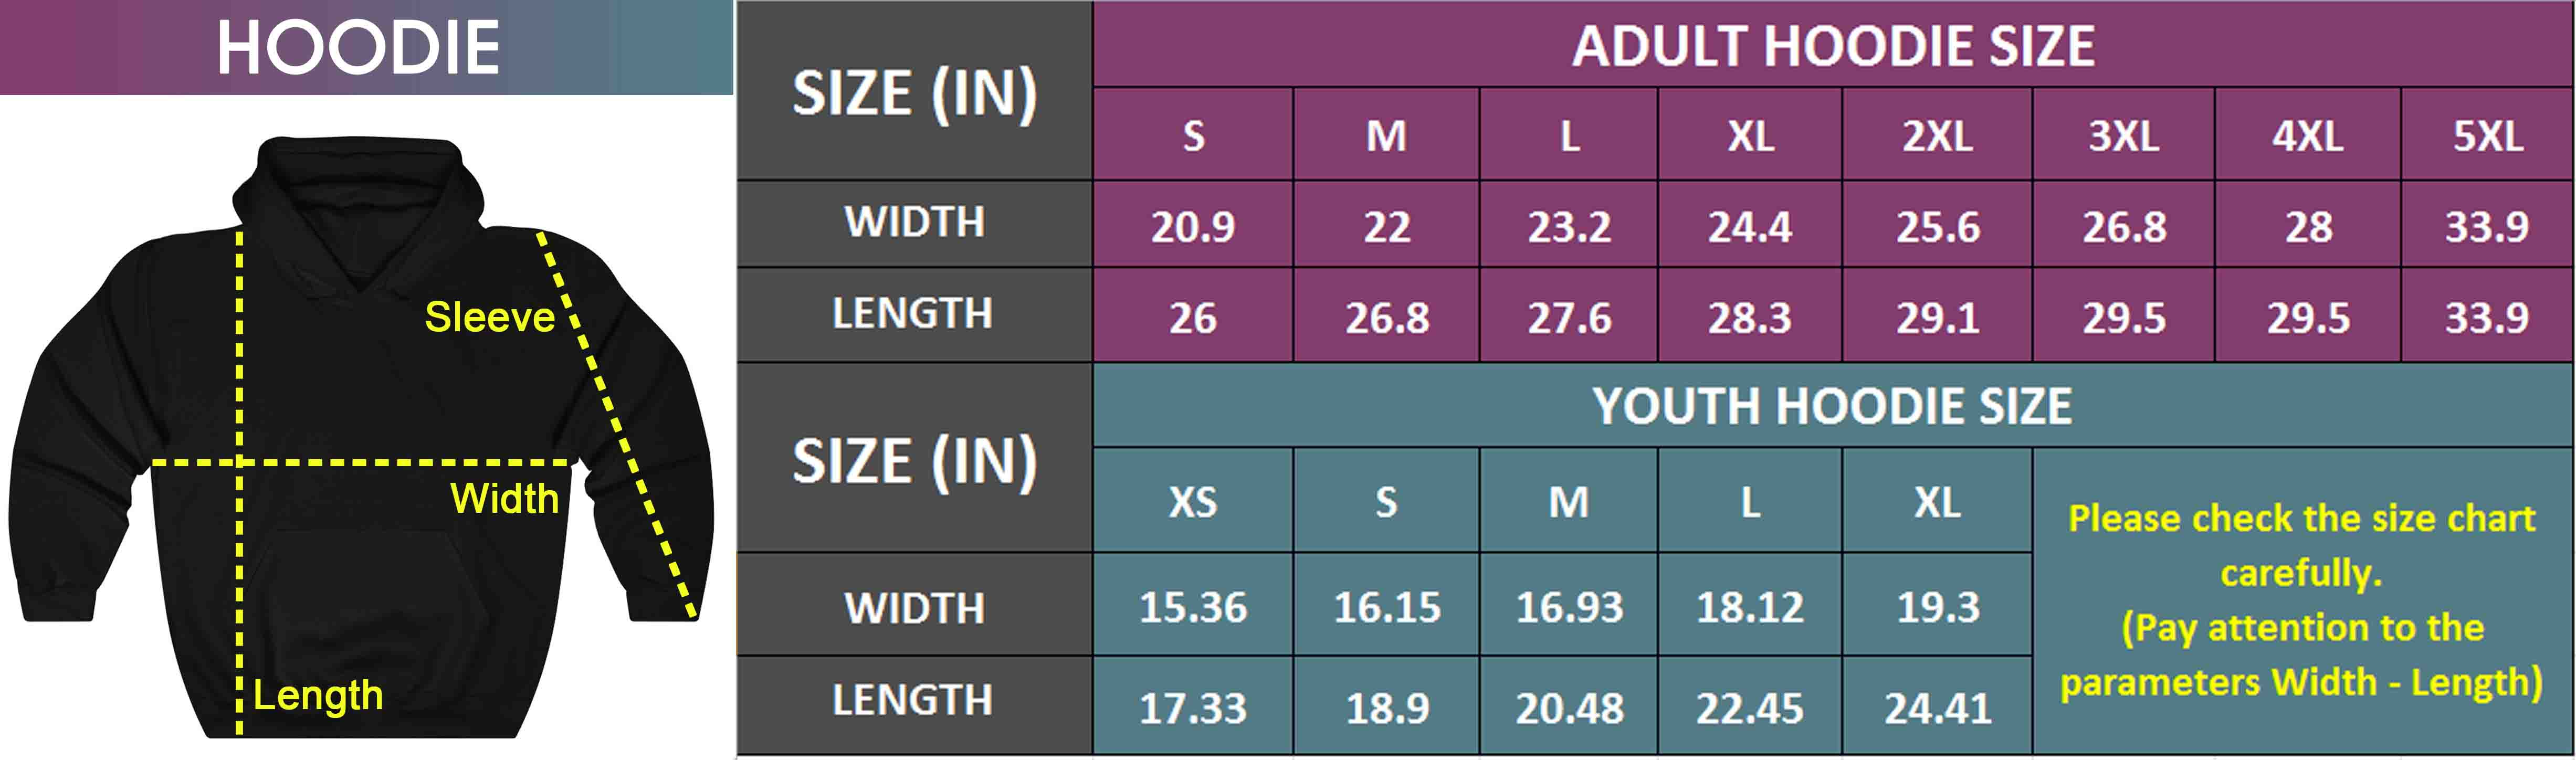 Adult & Youth Hoodie | Size Chart